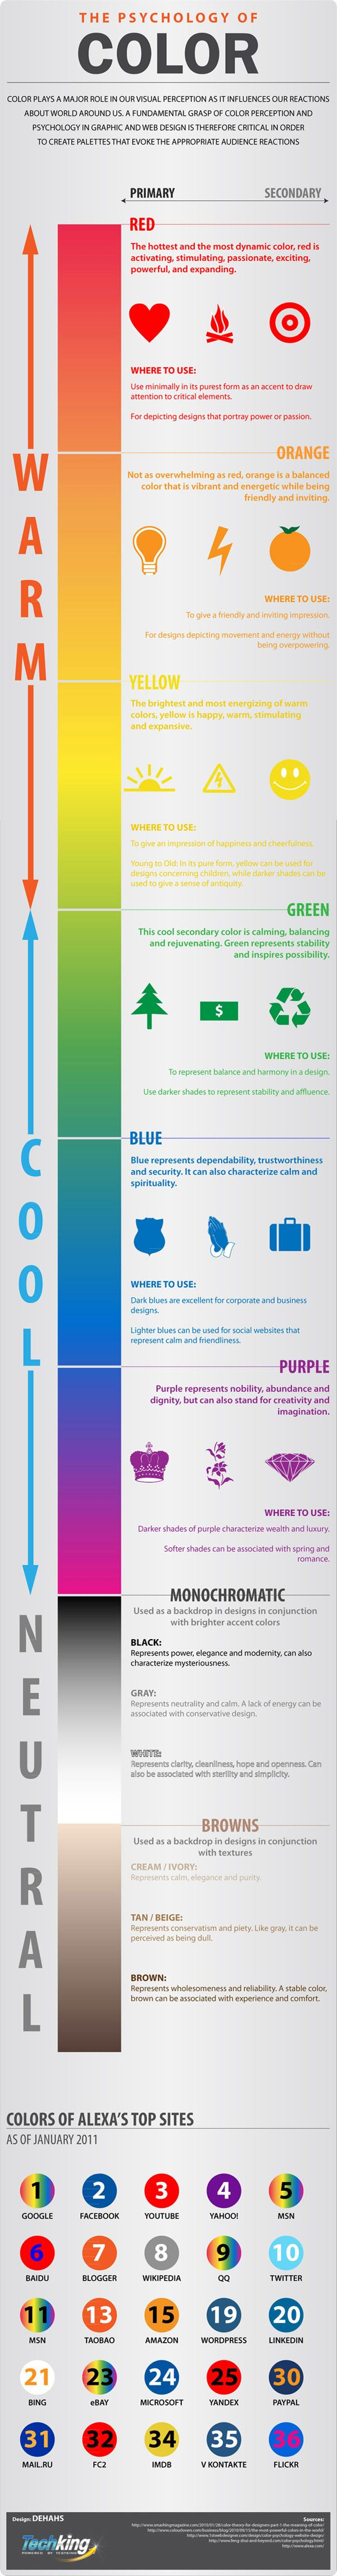 Colors web design psychology - 53 Best Psychology Of Color Images On Pinterest Colors Color Theory And Color Psychology